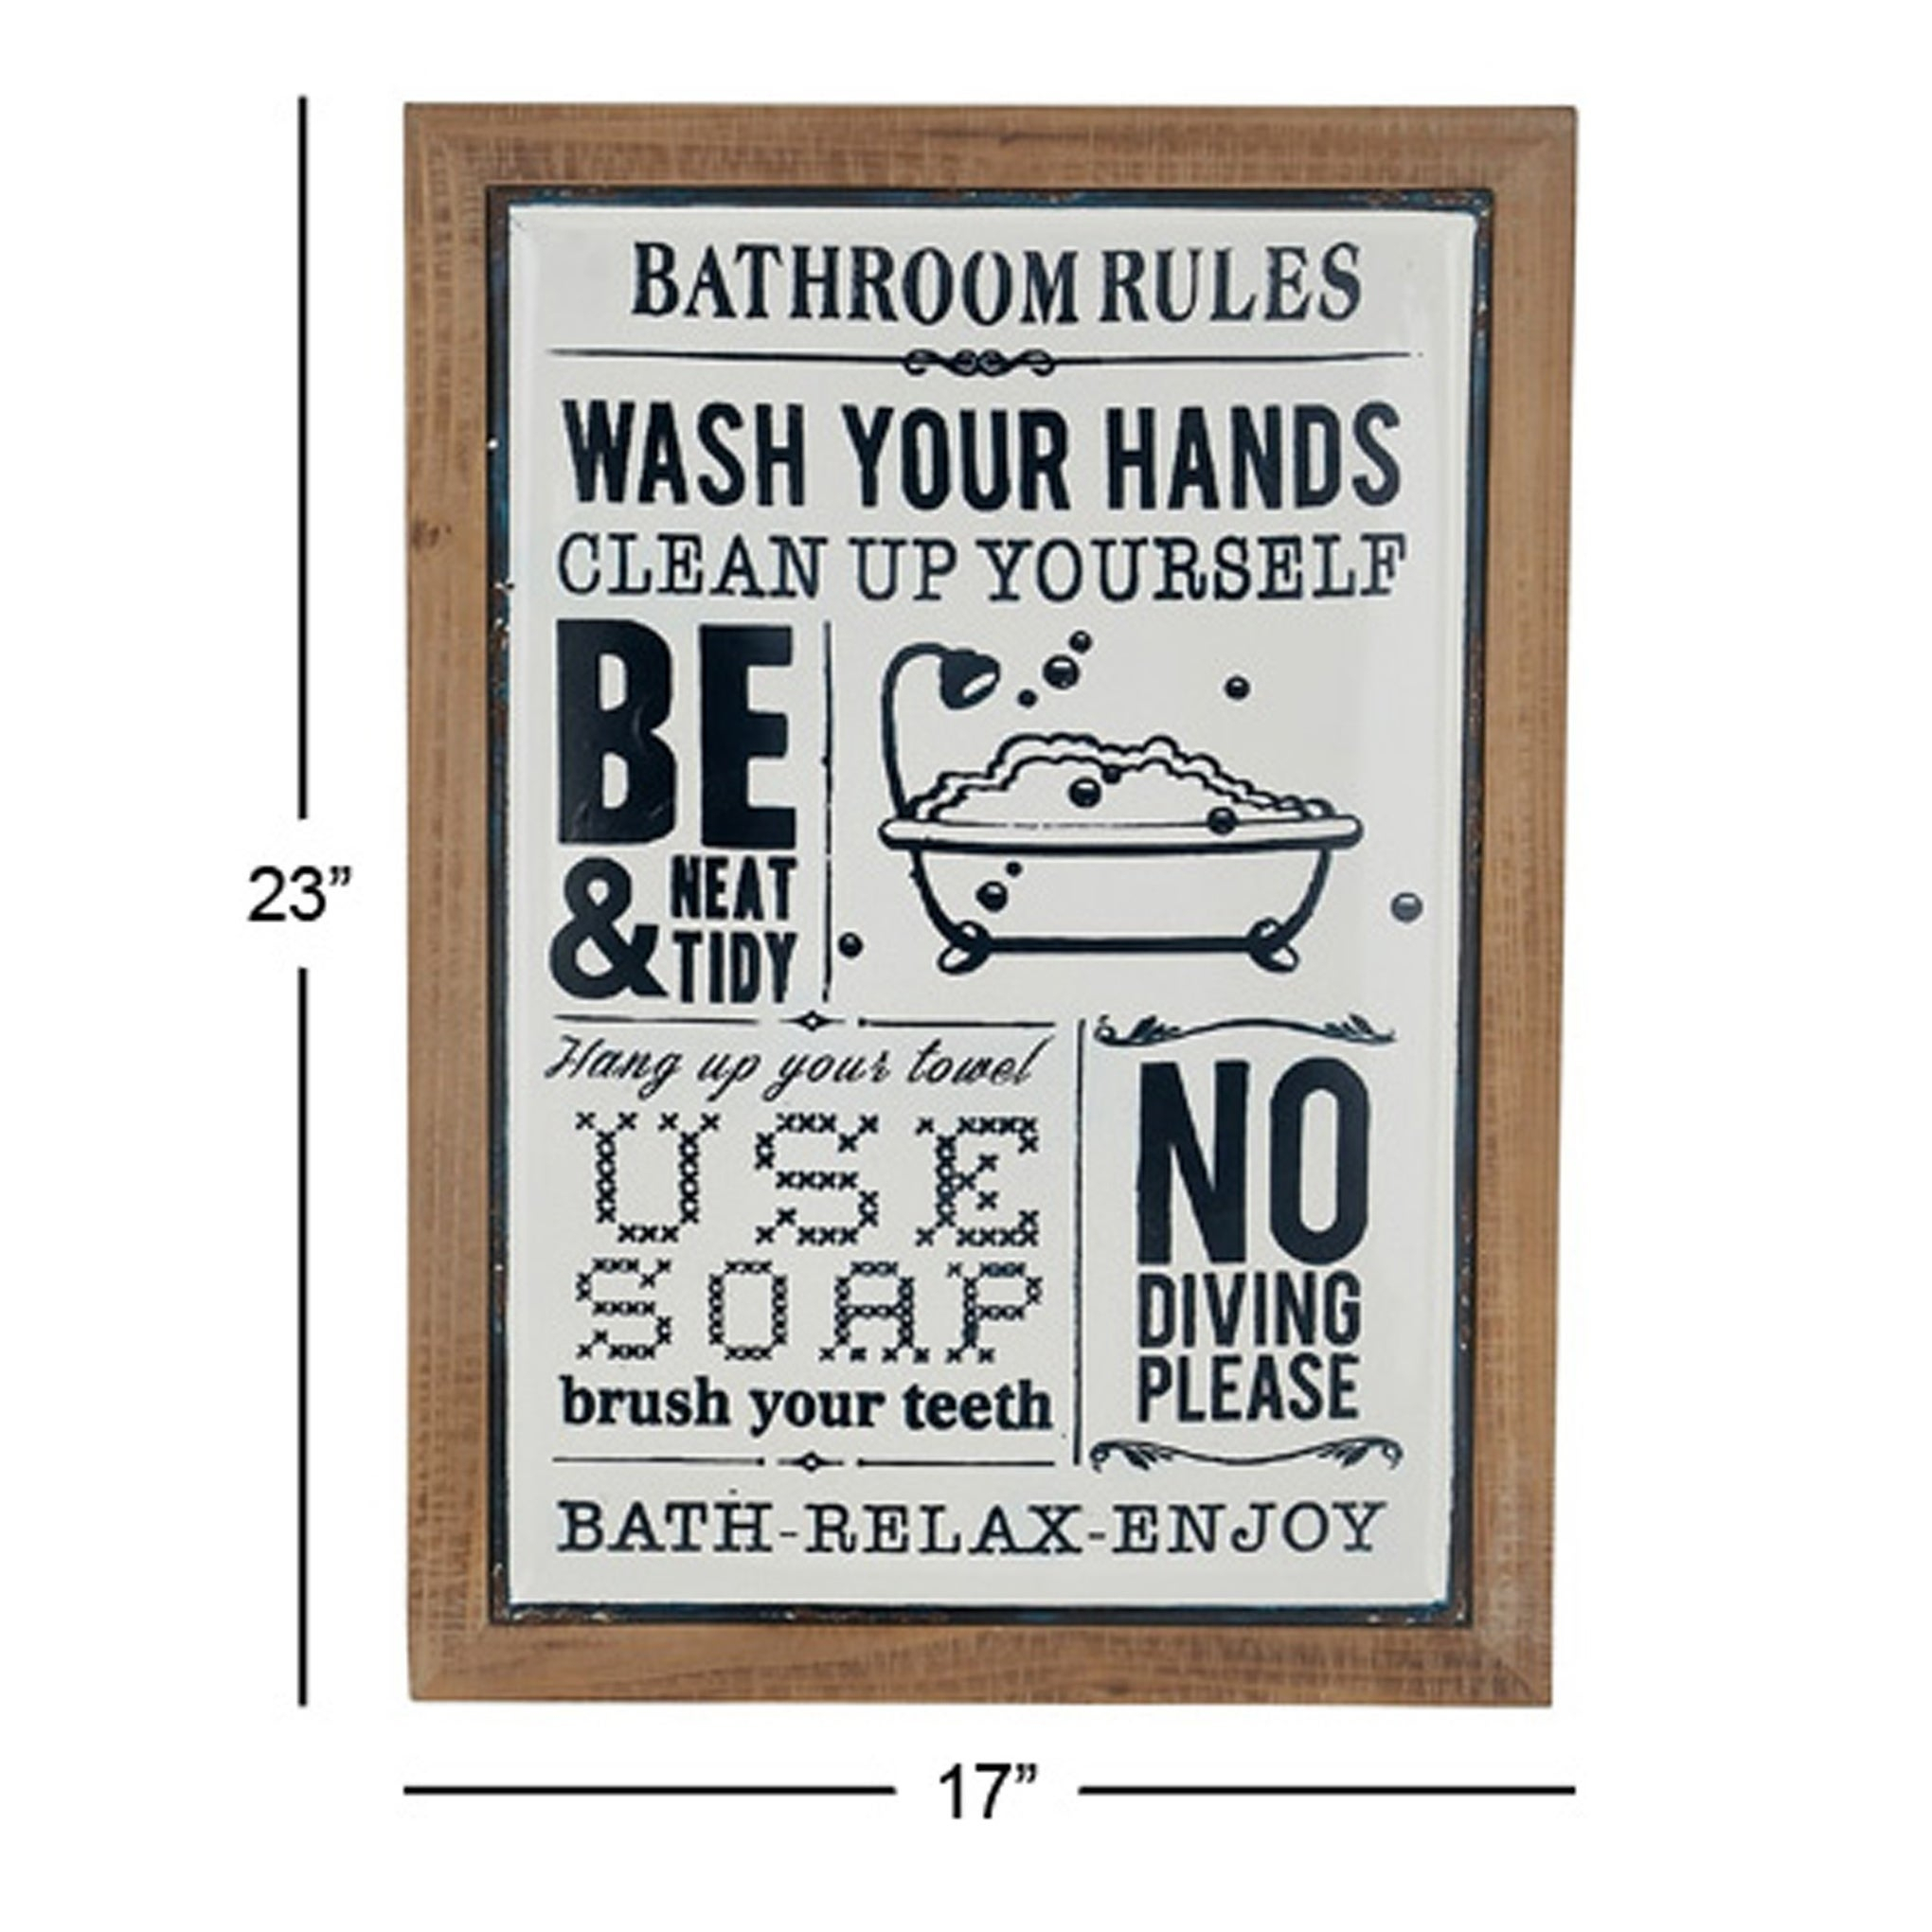 Farmhouse 23 X 17 Inch Rectangular Bathroom Rules Wall Decor With Regard To 3 Piece Wash, Brush, Comb Wall Decor Sets (set Of 3) (View 17 of 30)